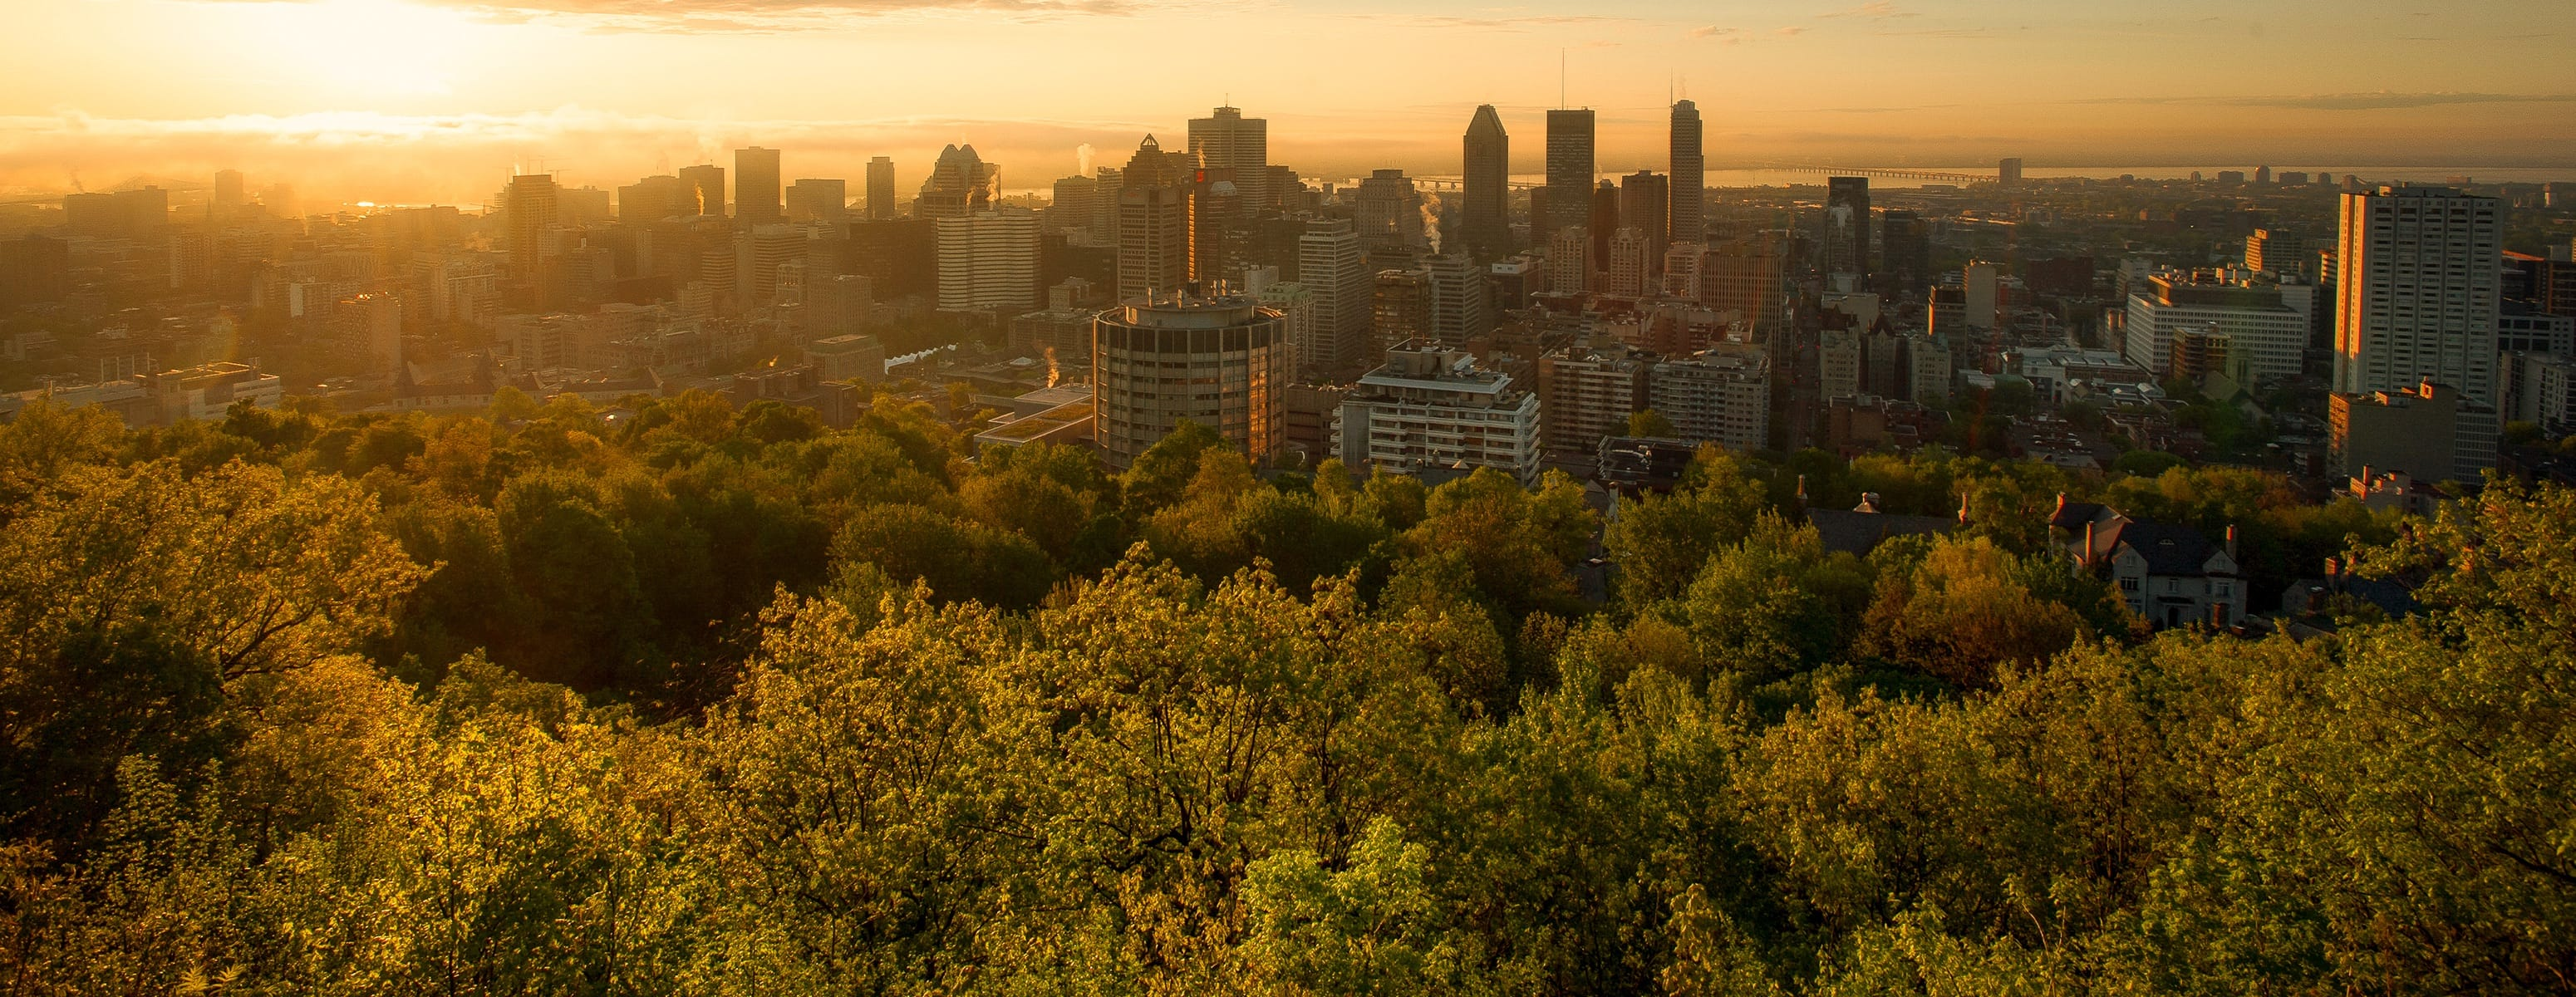 Montreal 2018 with photos top 20 montreal vacation rentals montreal 2018 with photos top 20 montreal vacation rentals vacation homes condo rentals airbnb montreal quebec canada bed and breakfast montreal solutioingenieria Choice Image